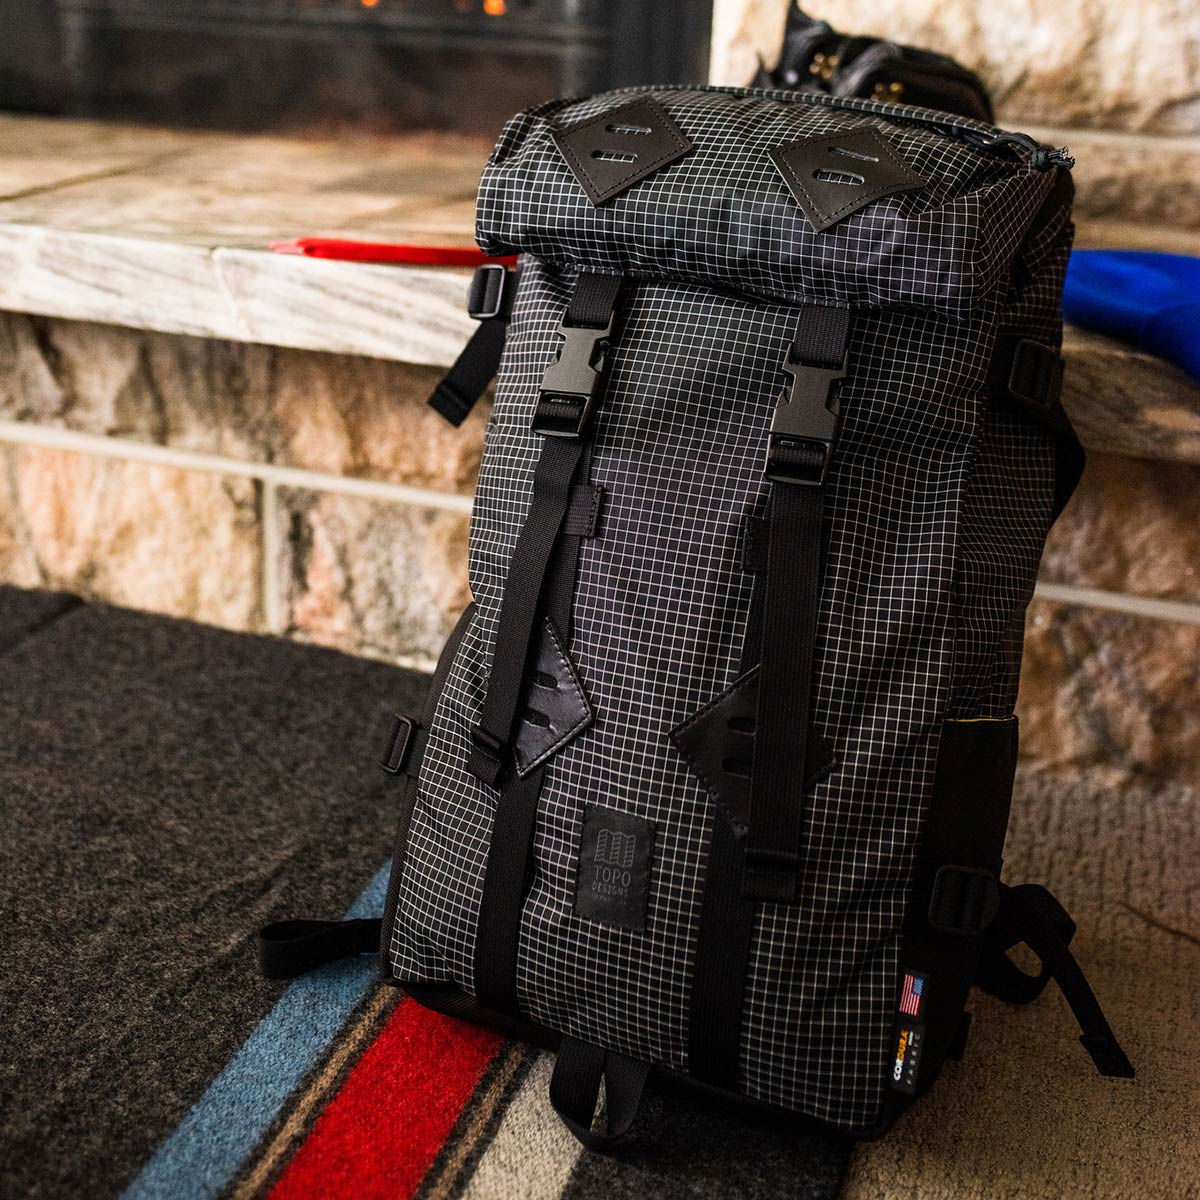 Topo Designs Klettersack Black/White Ripstop at the fireplace